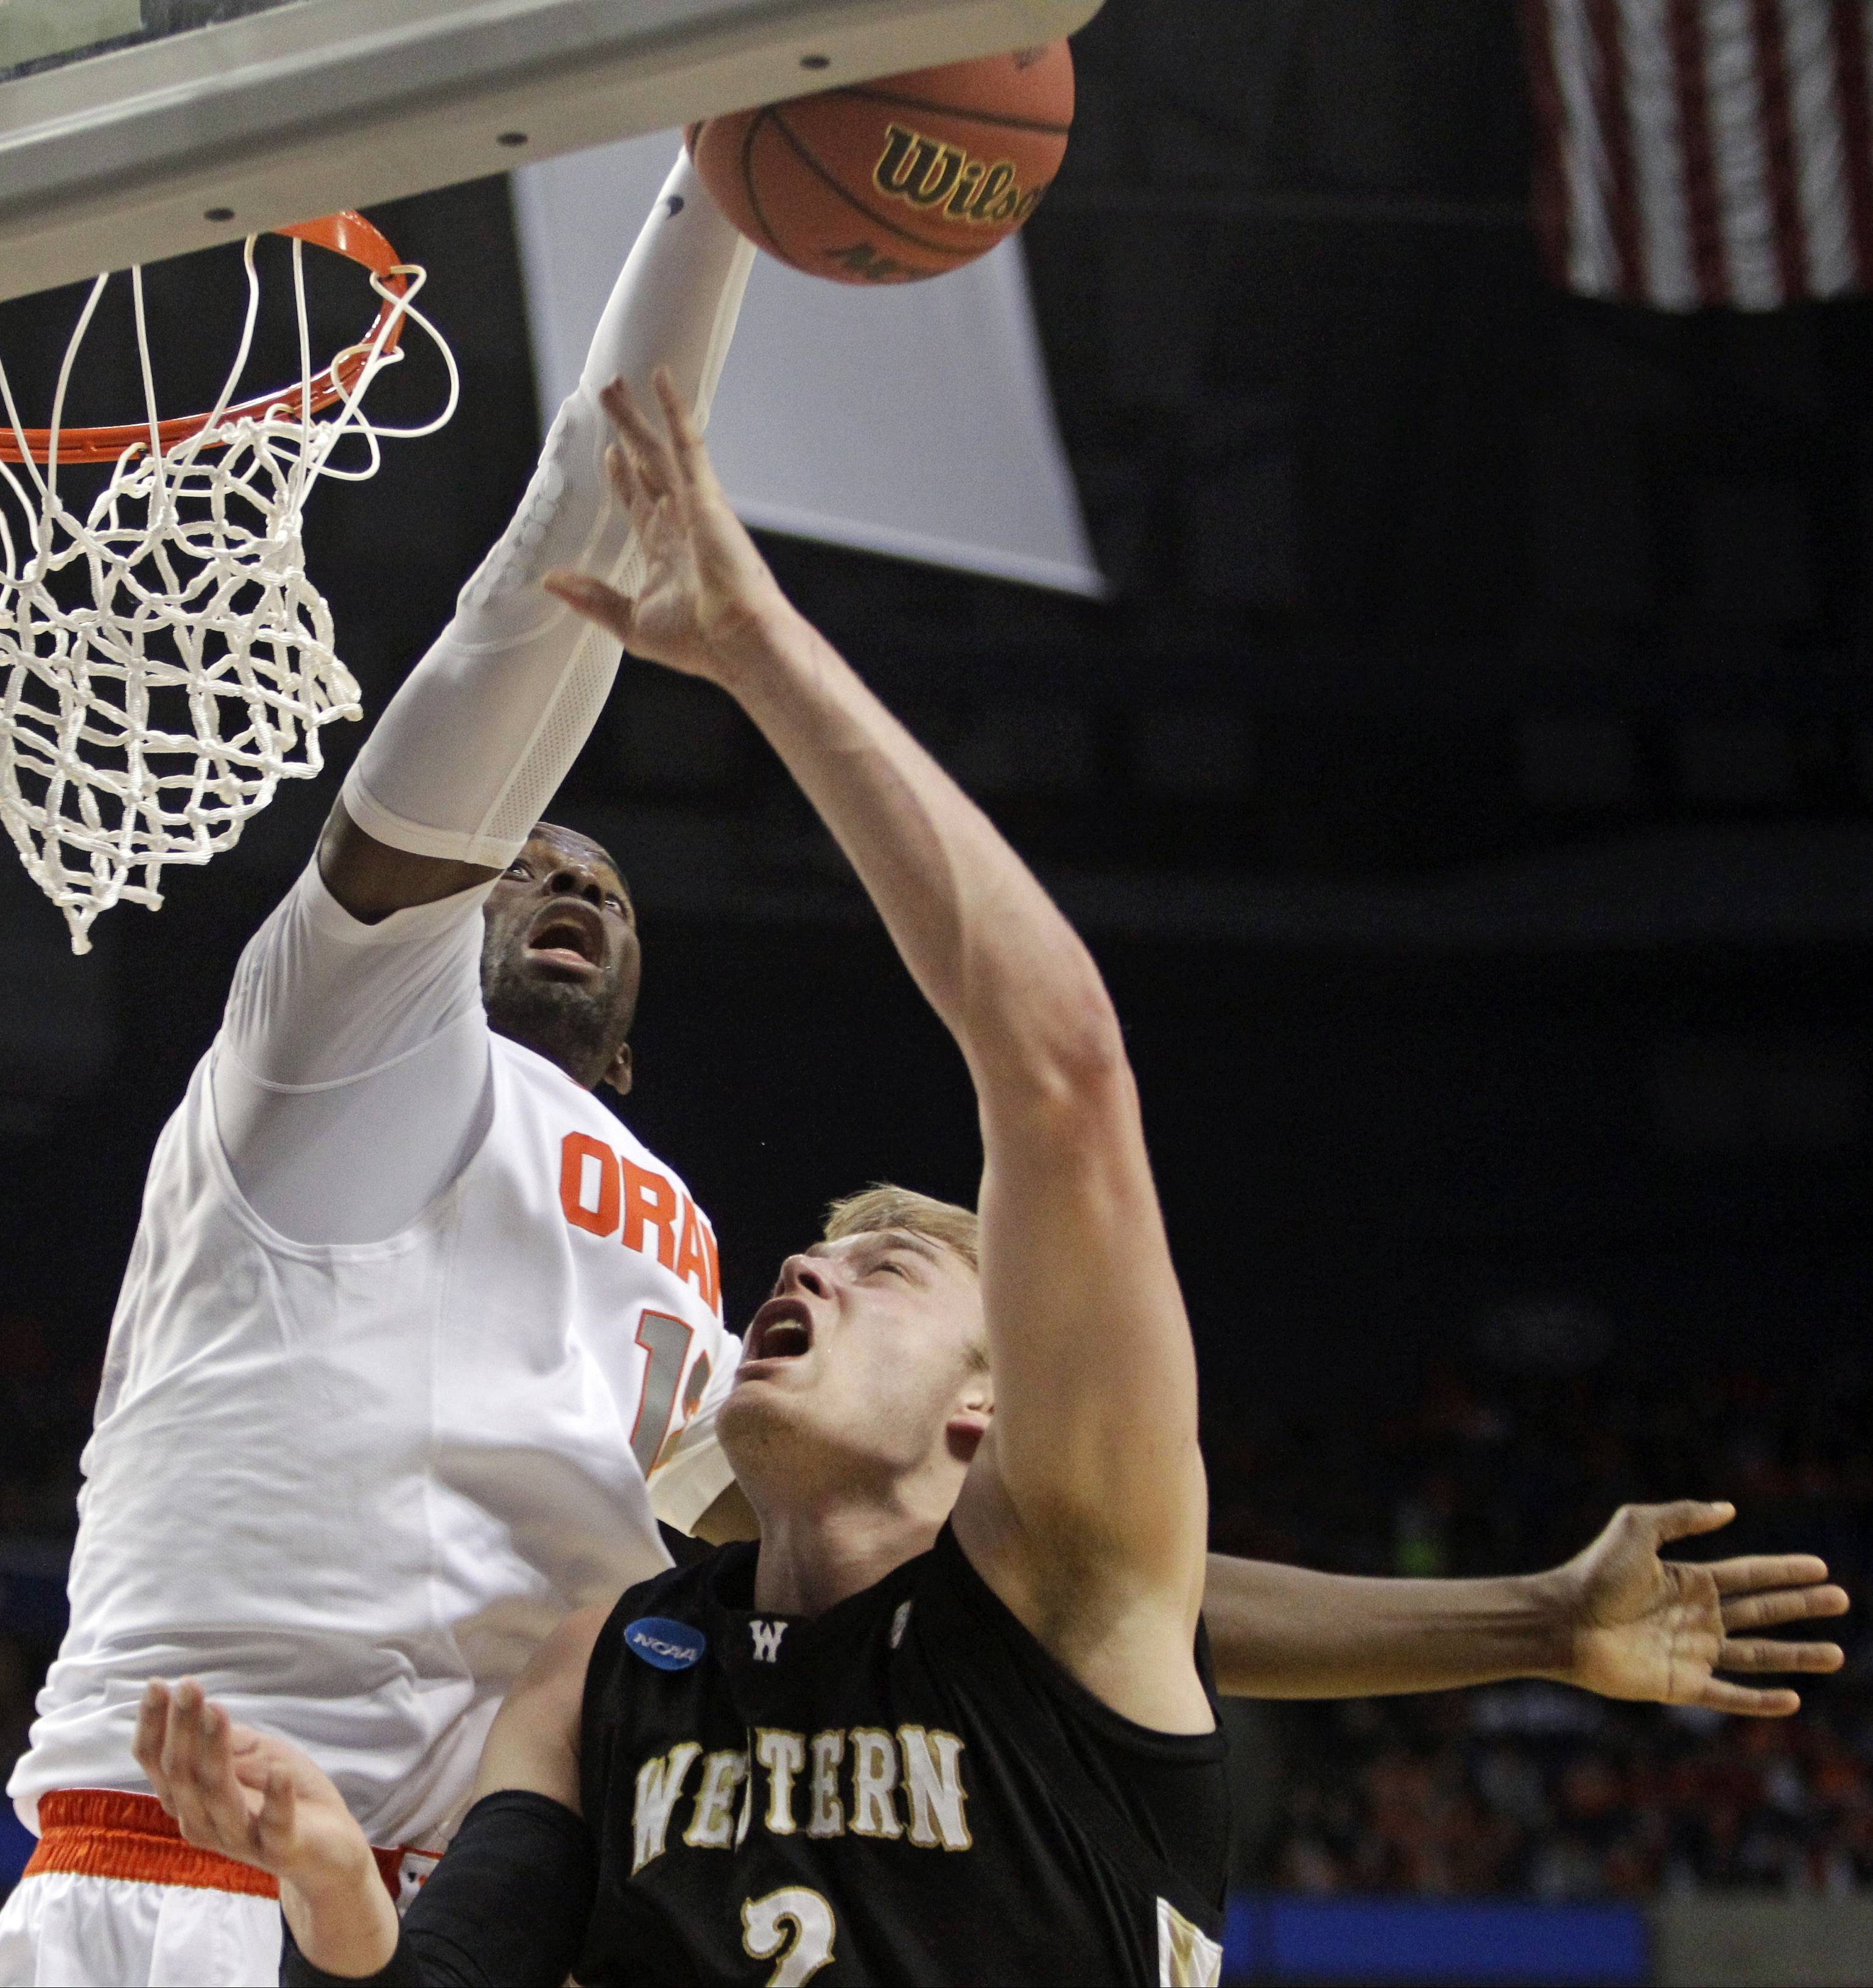 Syracuse defense rises, Orange beat WMU 77-53